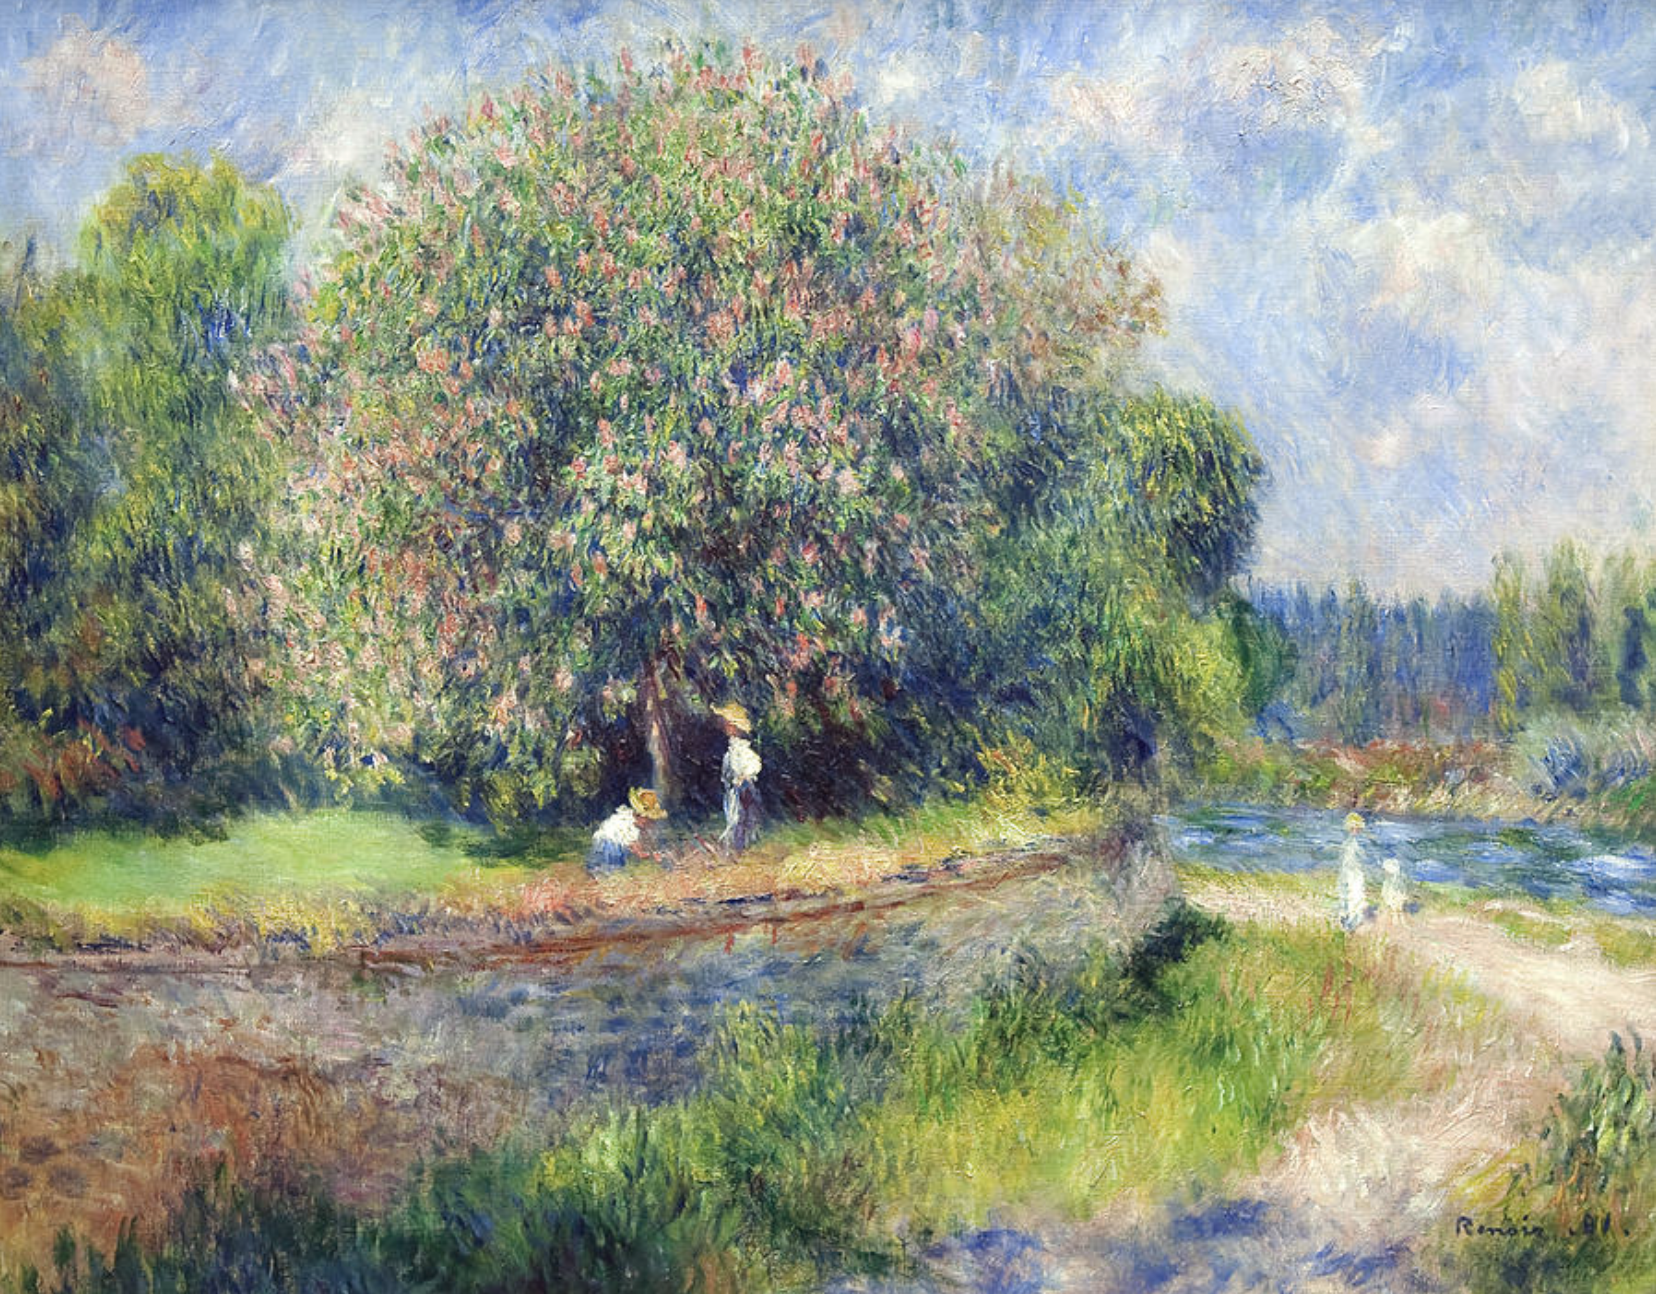 Horse Chestnut Tree In Flower by Renoir